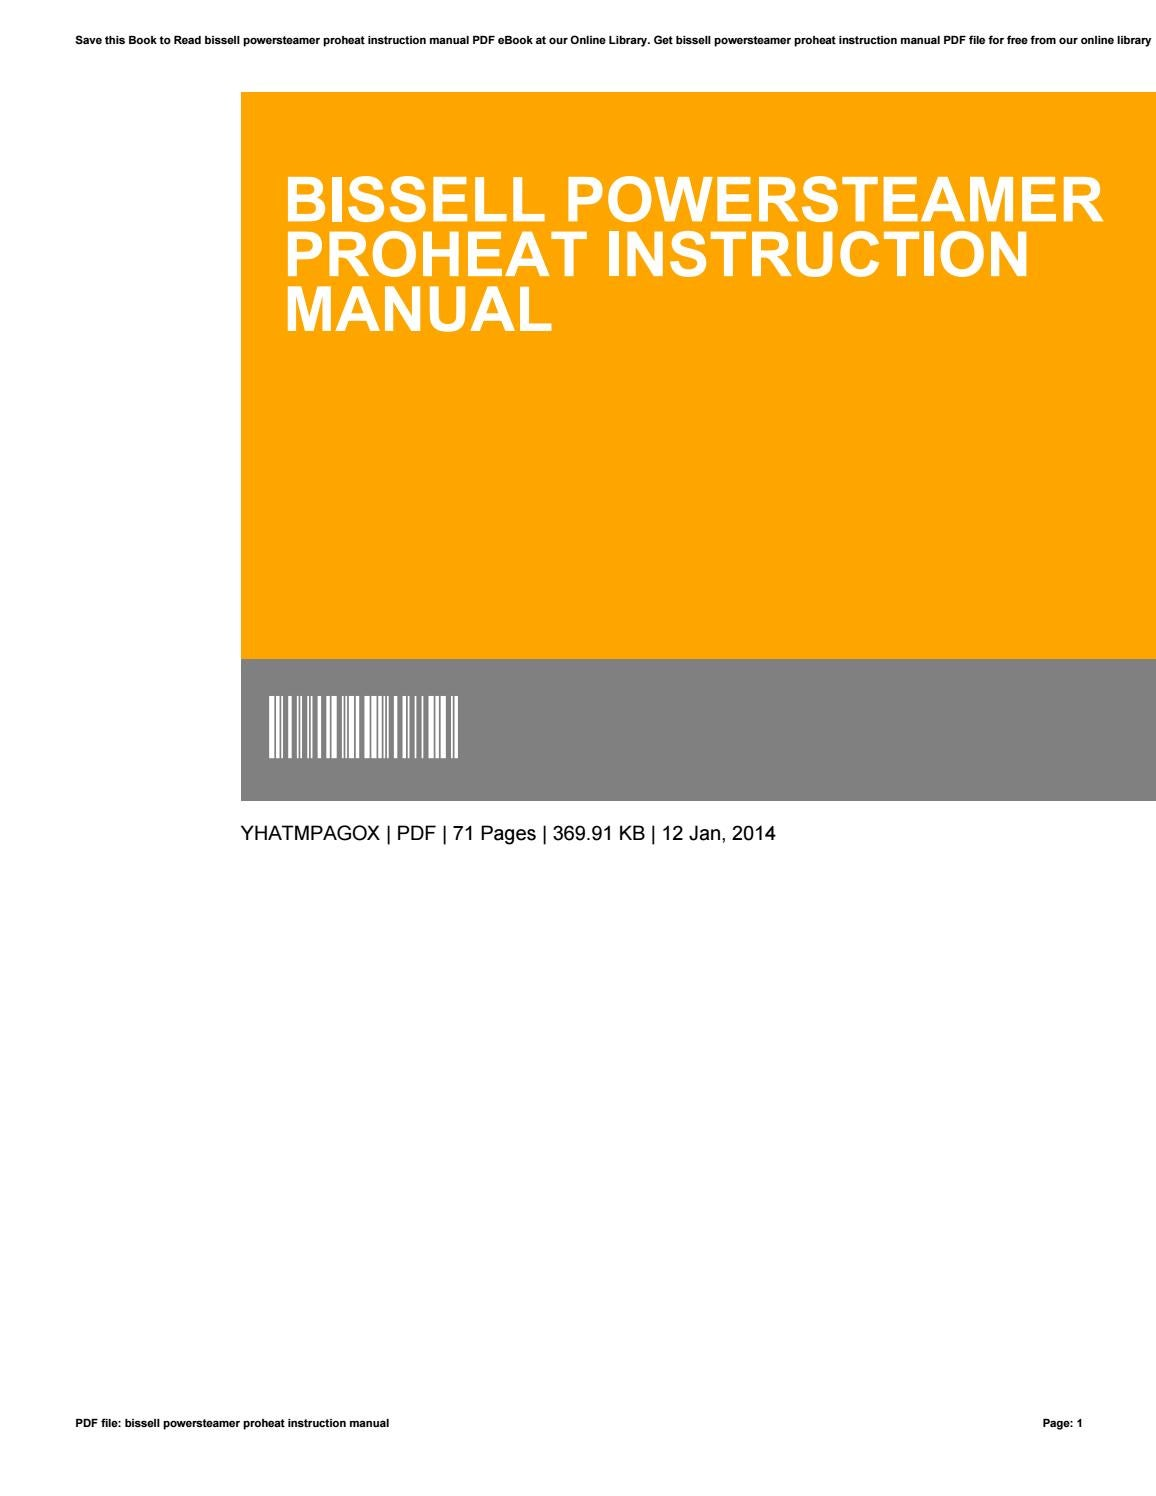 Bissell powersteamer proheat instruction manual by CarolynGray4559 - issuu